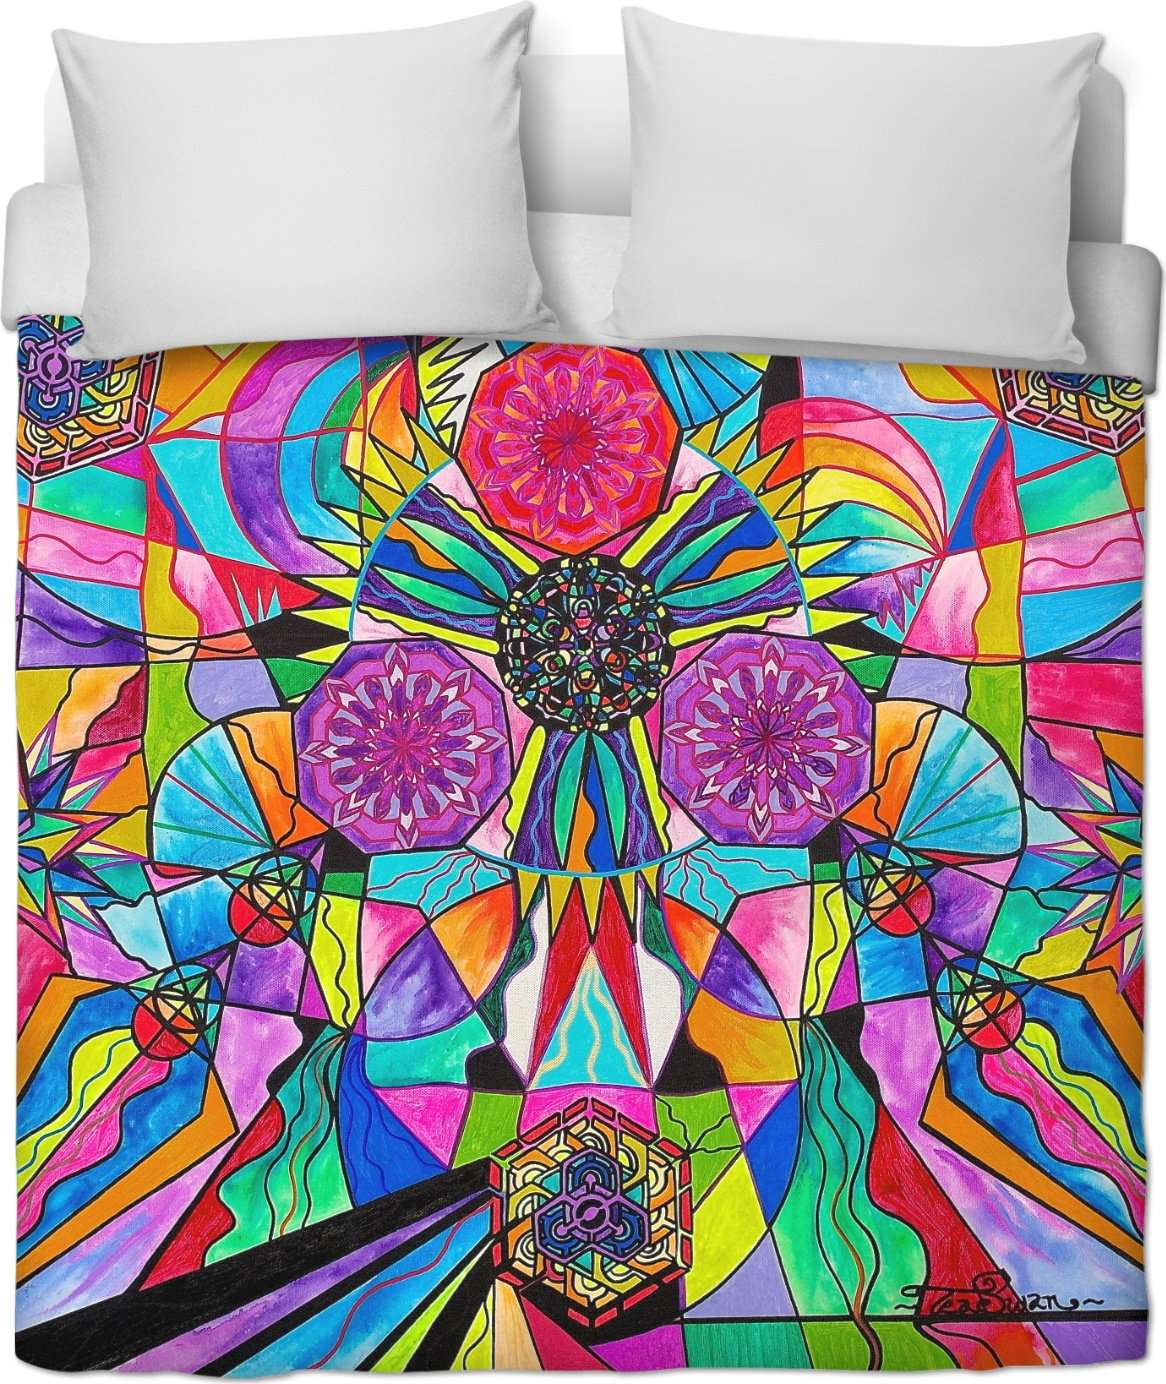 Positive Intention - Duvet Cover